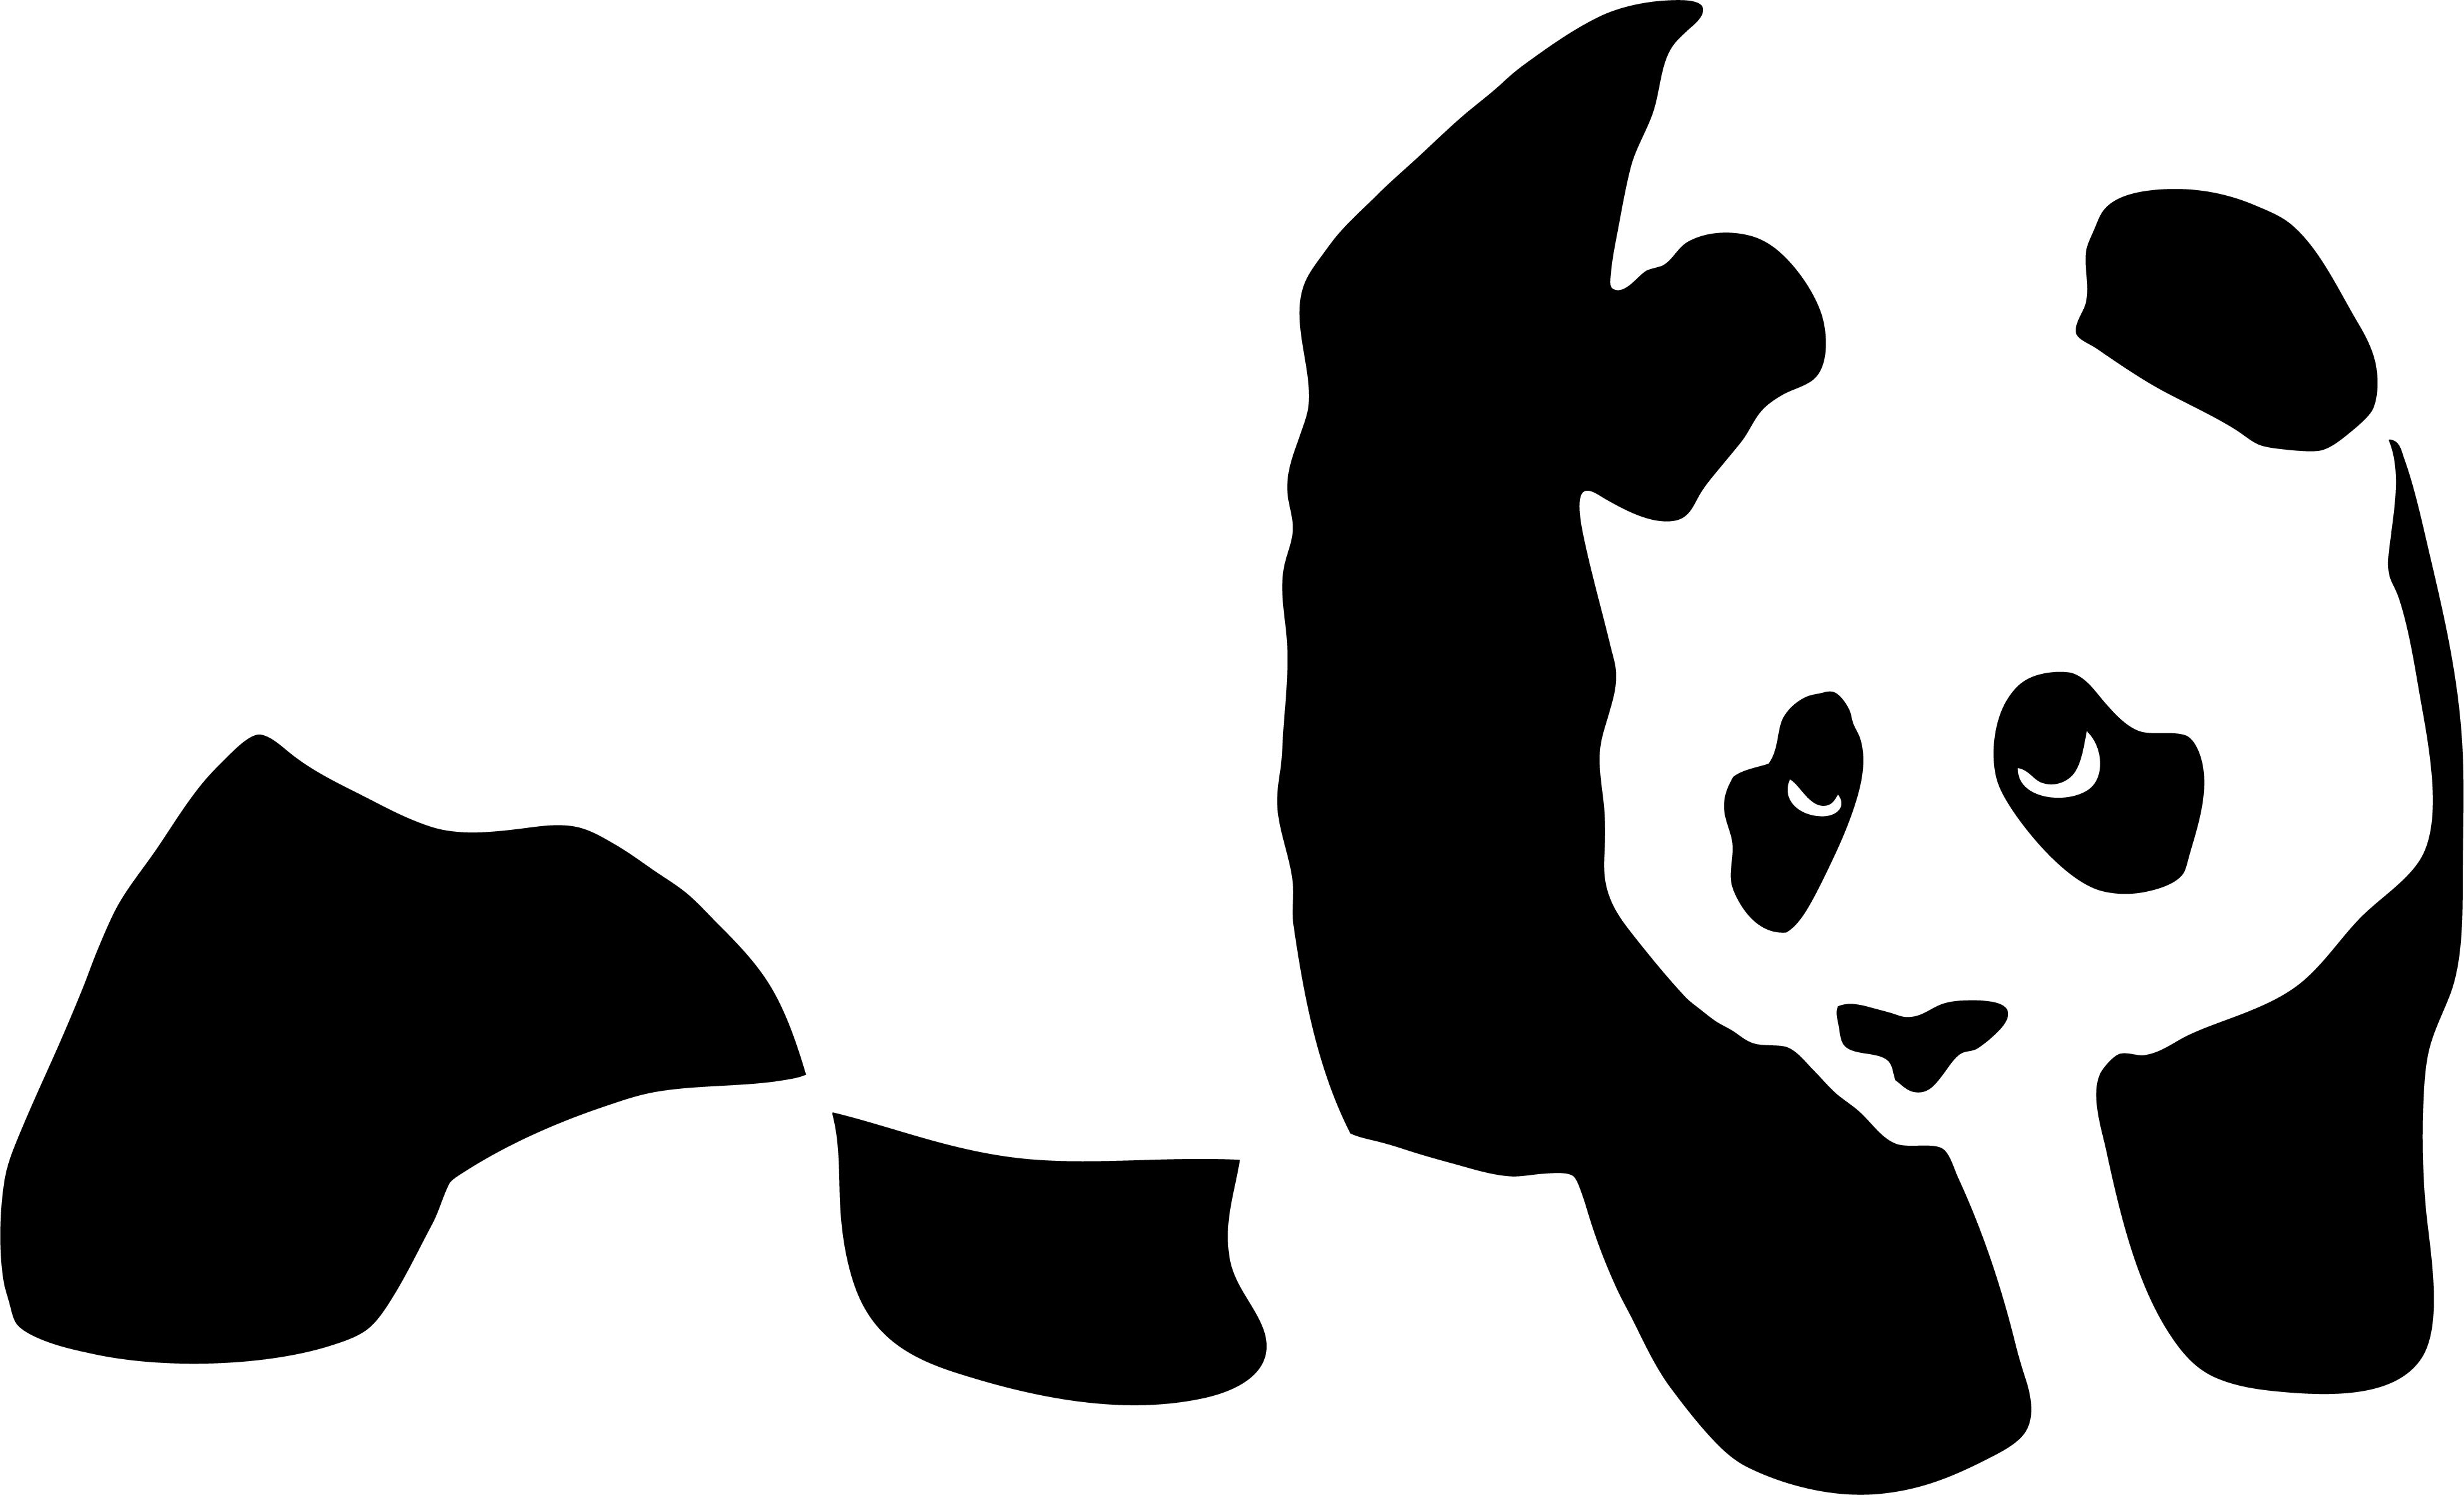 Banksy panda with guns sticker truck stickers logos and vinyl - 2 Plan B Skateboarding Stickers Decals Plan B Logo Plan B Skateboarding Logo Square Style Sticker Decal These Come In A Pair So This Price Is For 2